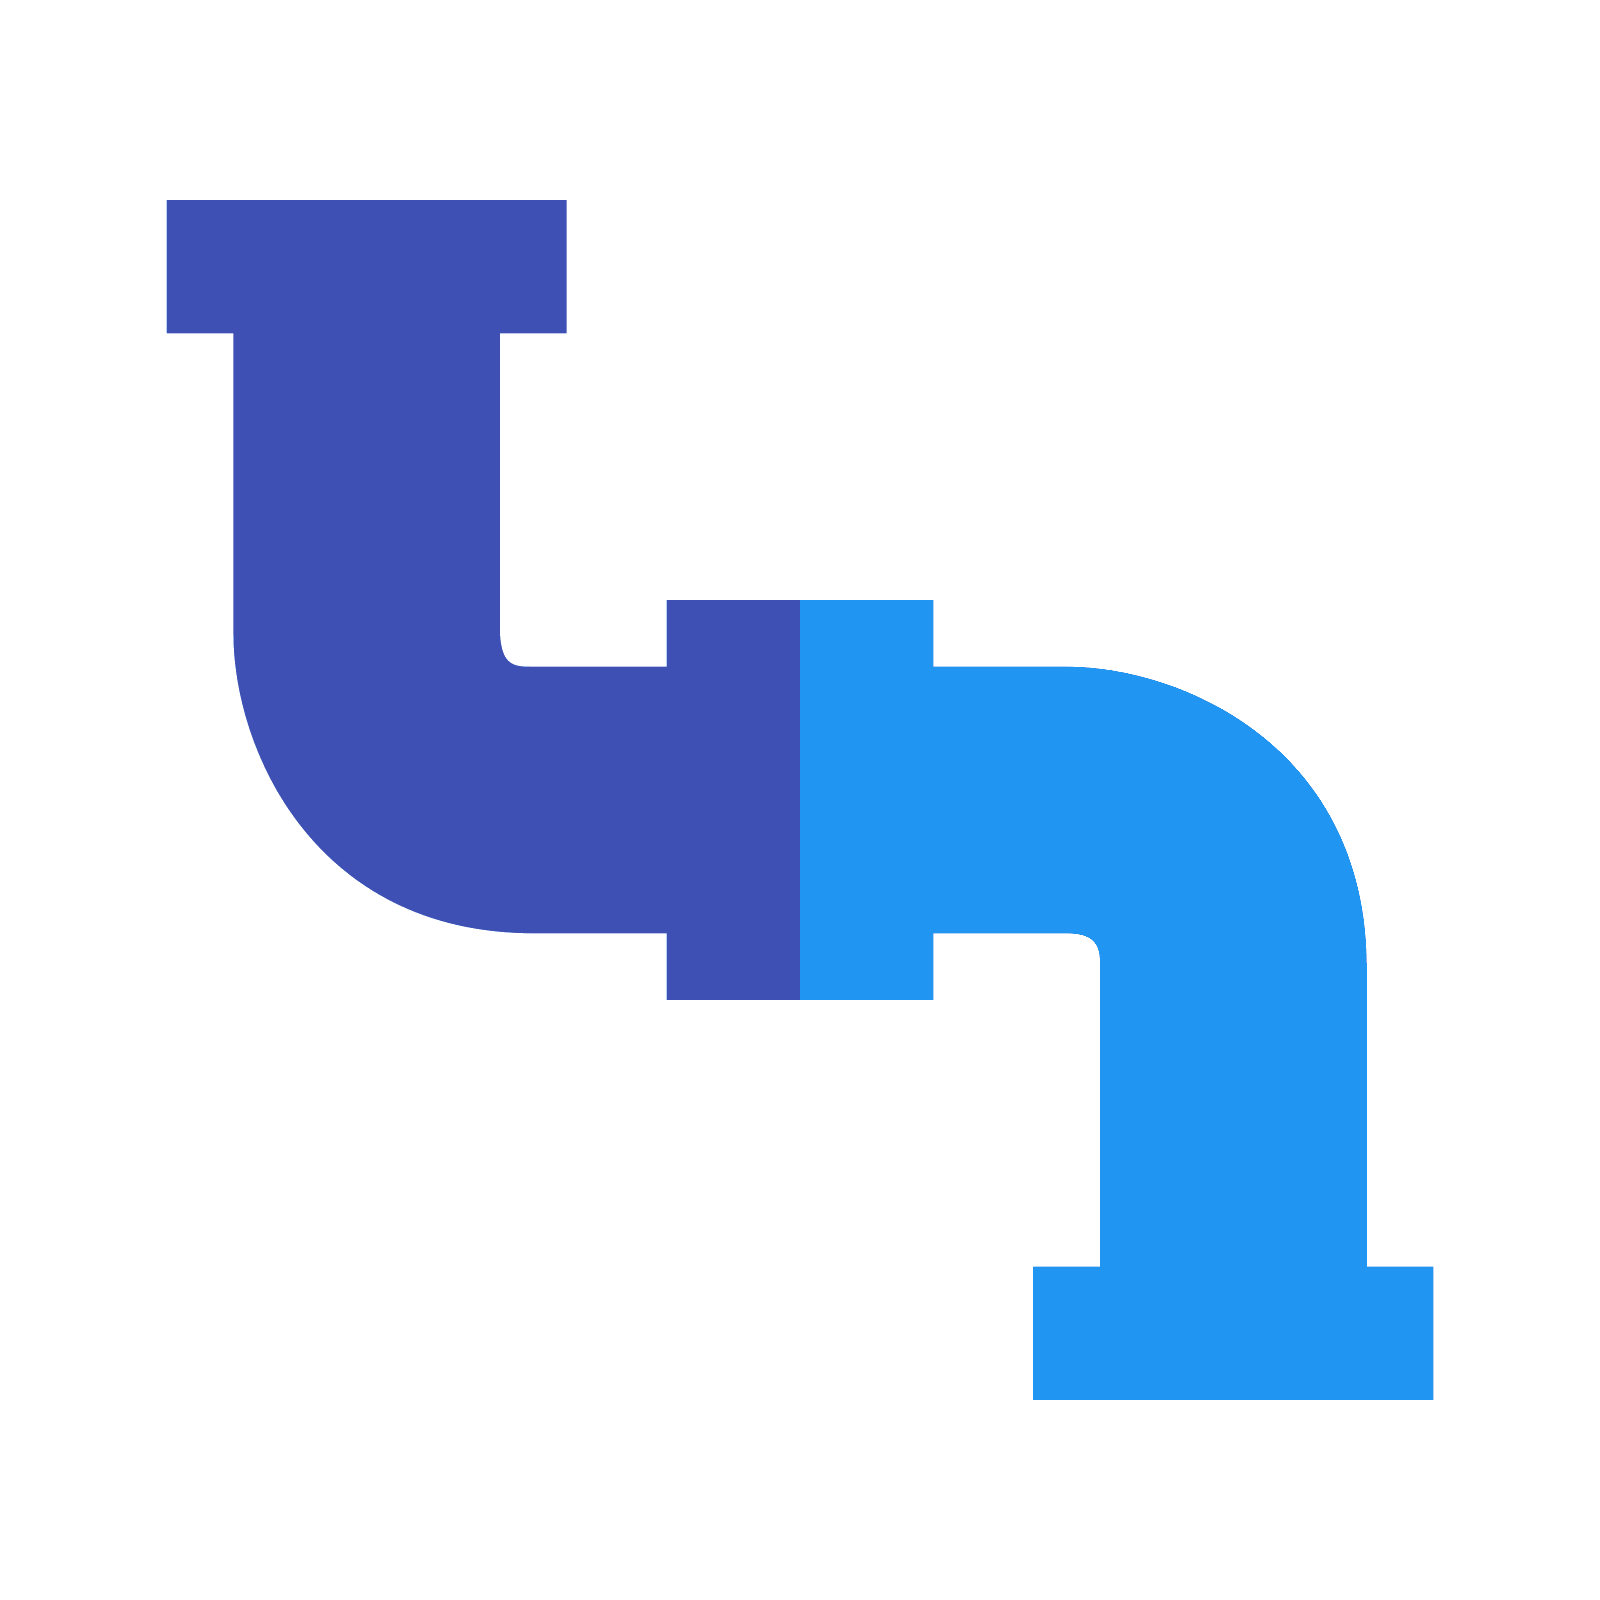 Computer icons plumbing pipe. Use png as icon windows 10